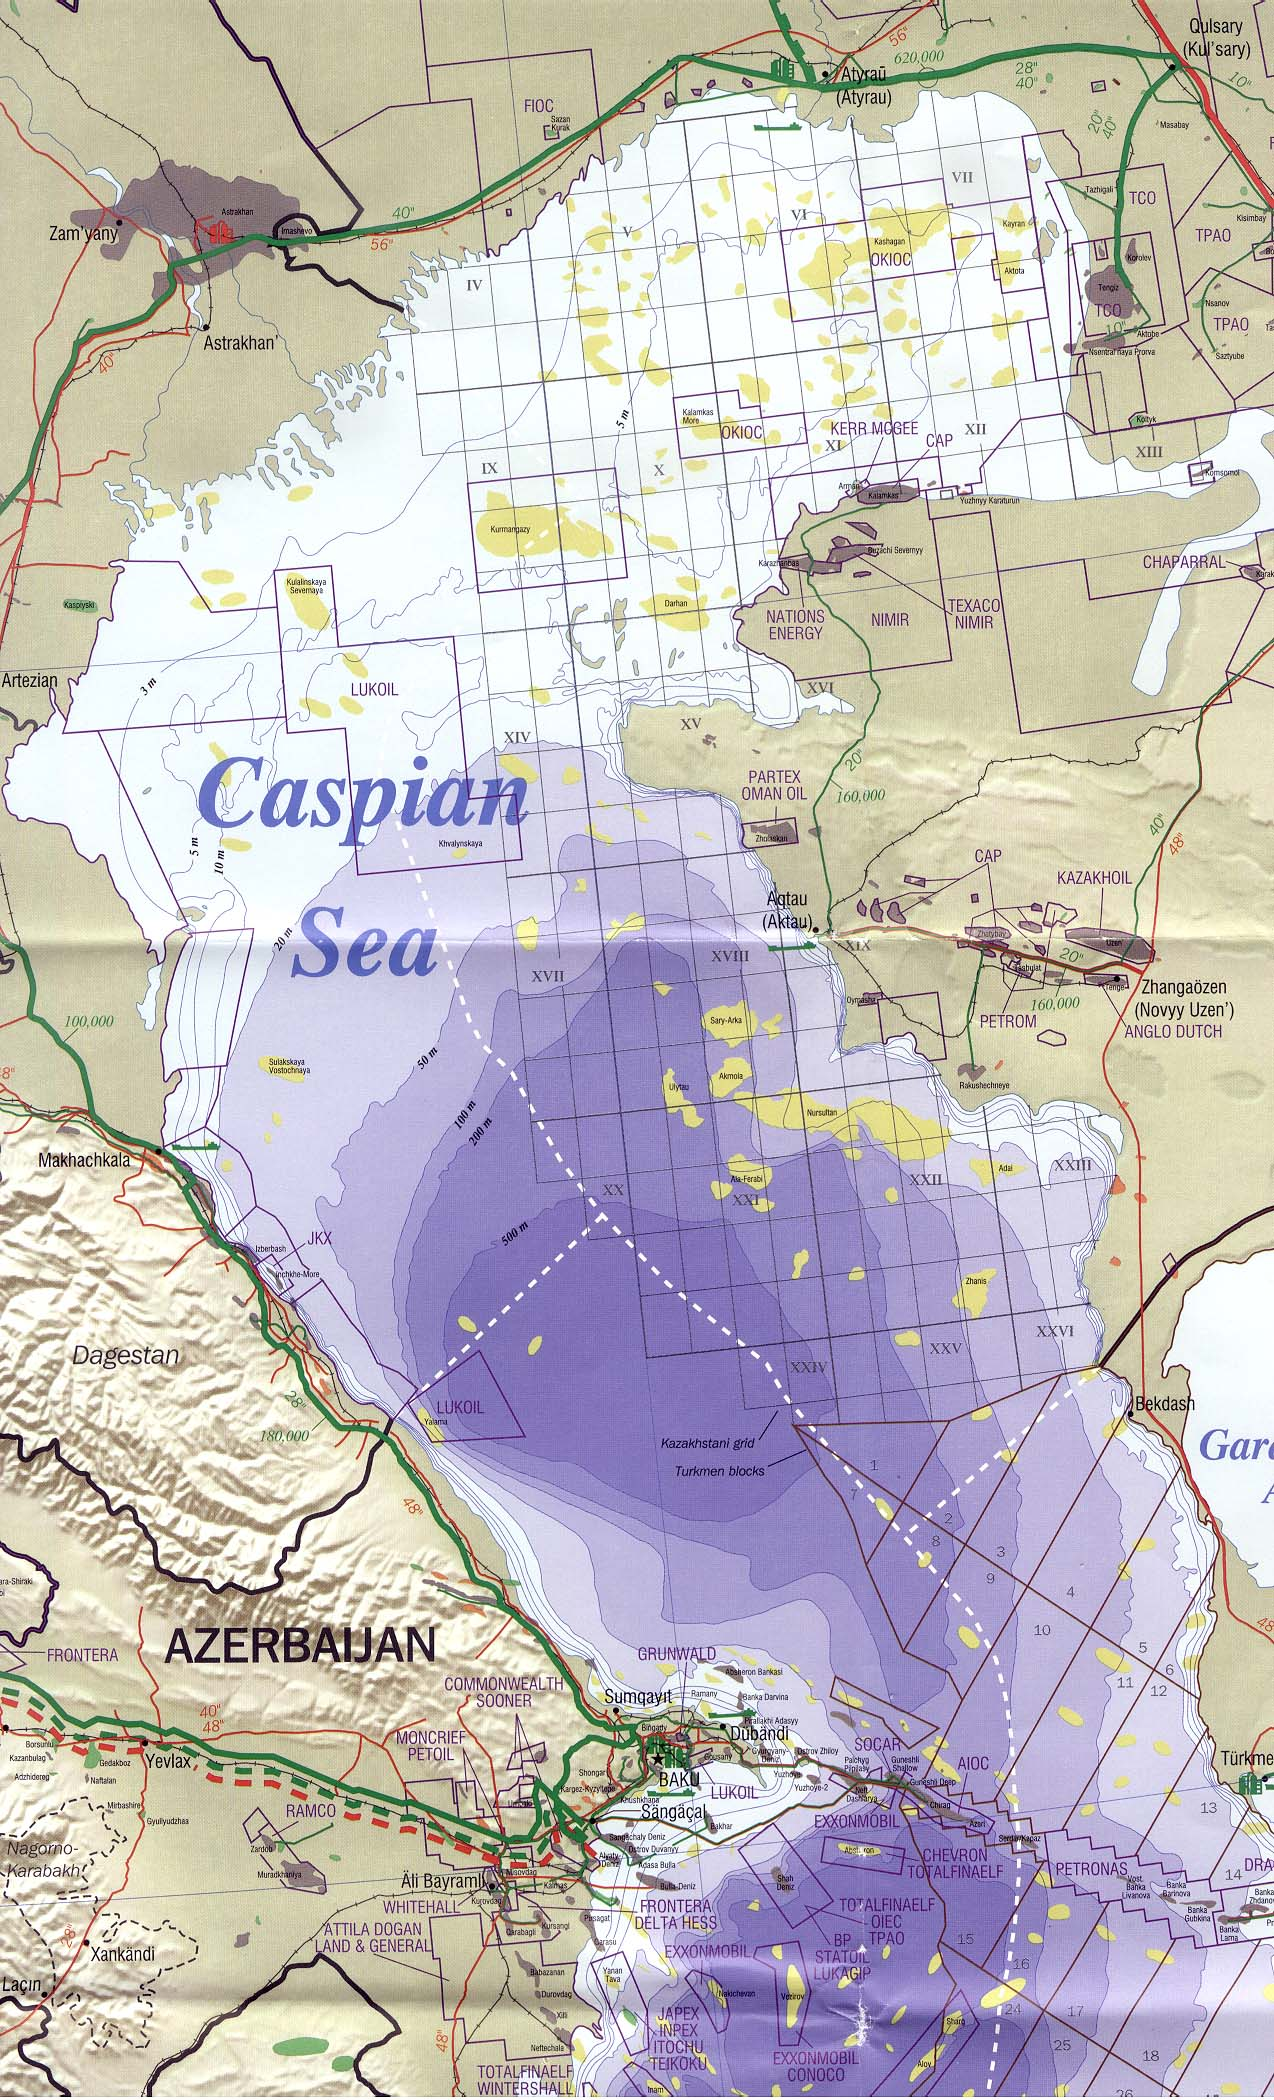 Download free world energy maps for alternative and renewable green caspian sea oil and gas map north gumiabroncs Image collections